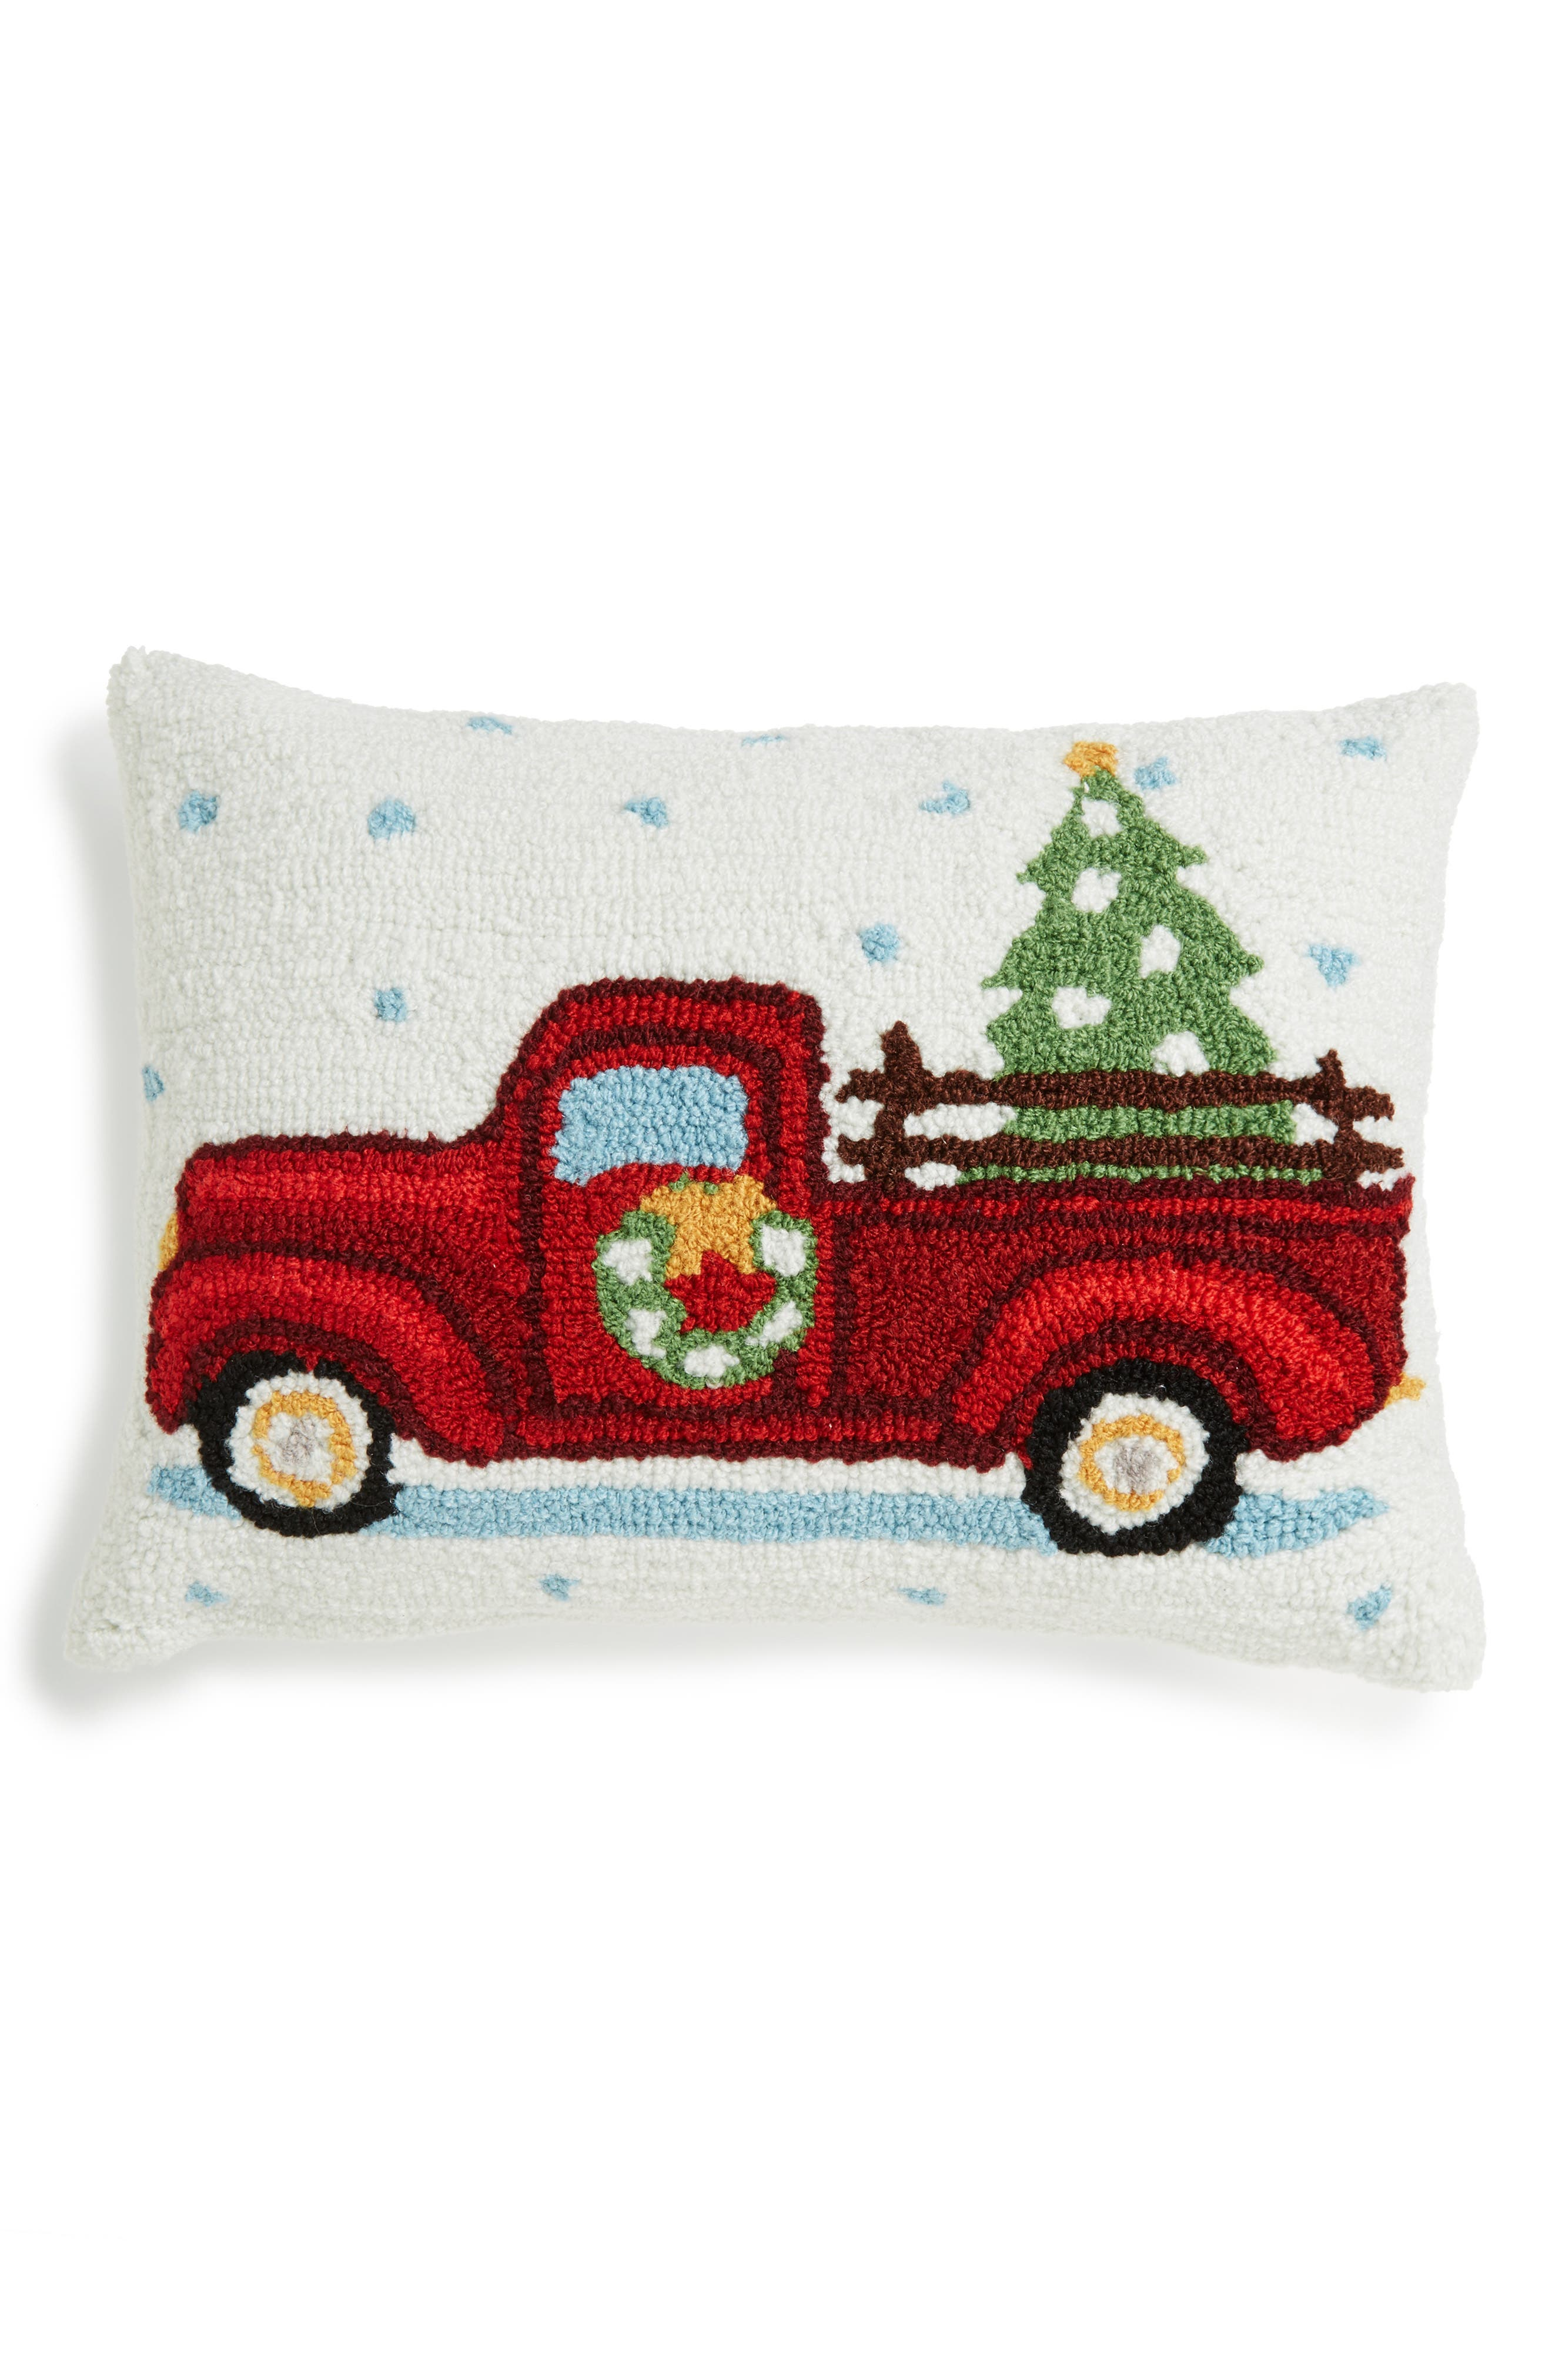 Main Image - Peking Handicraft Highway Christmas Tree Truck Hooked Accent Pillow